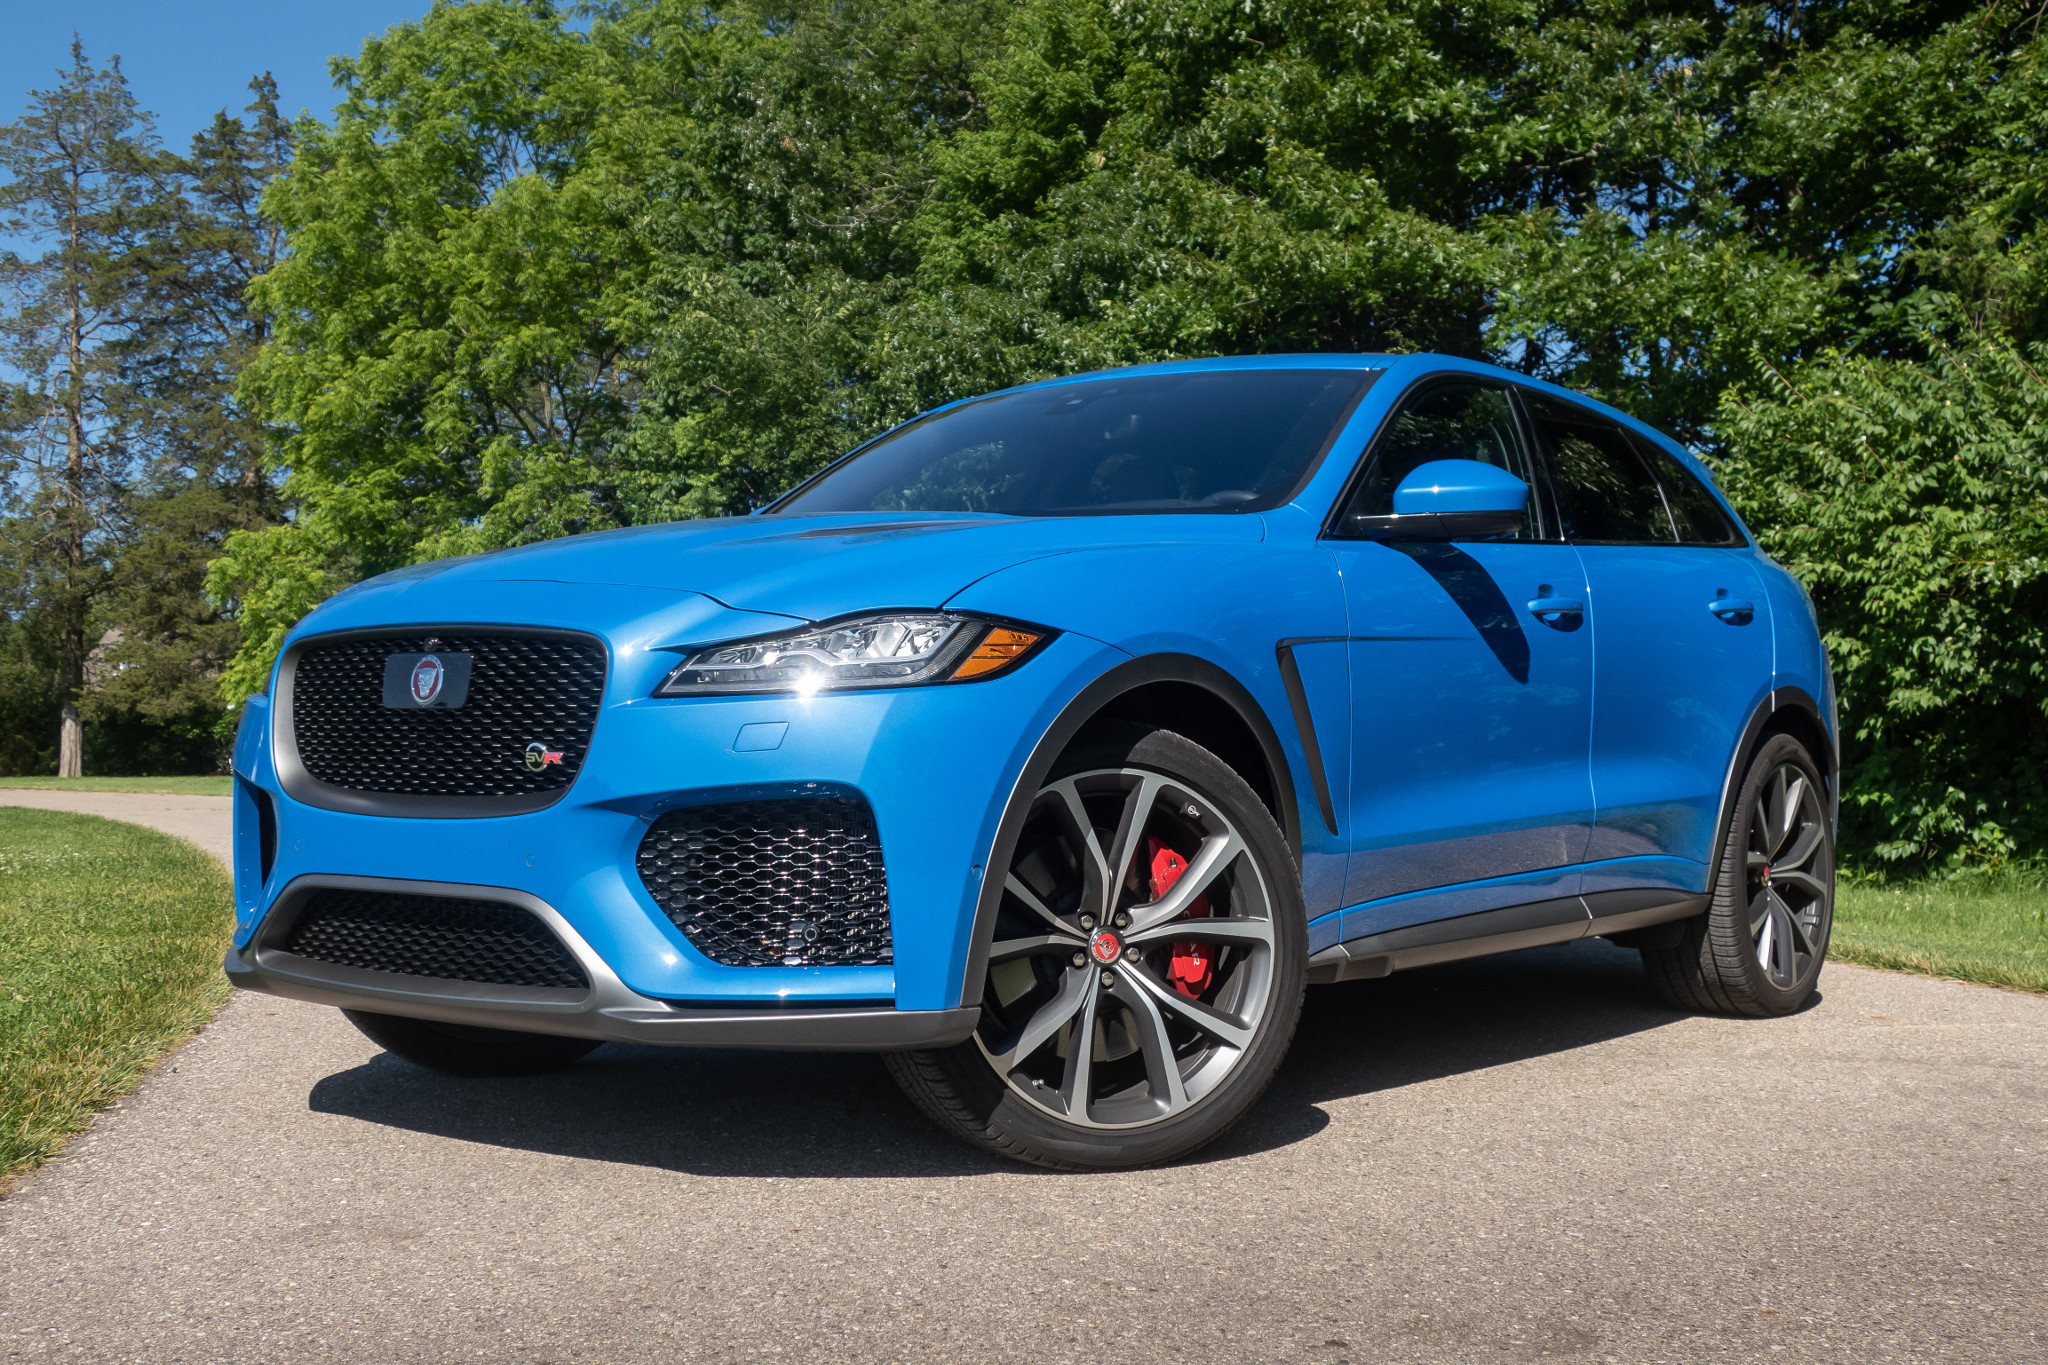 2019 Jaguar F-Pace SVR Review: Roaring Kitty via @carsdotcom